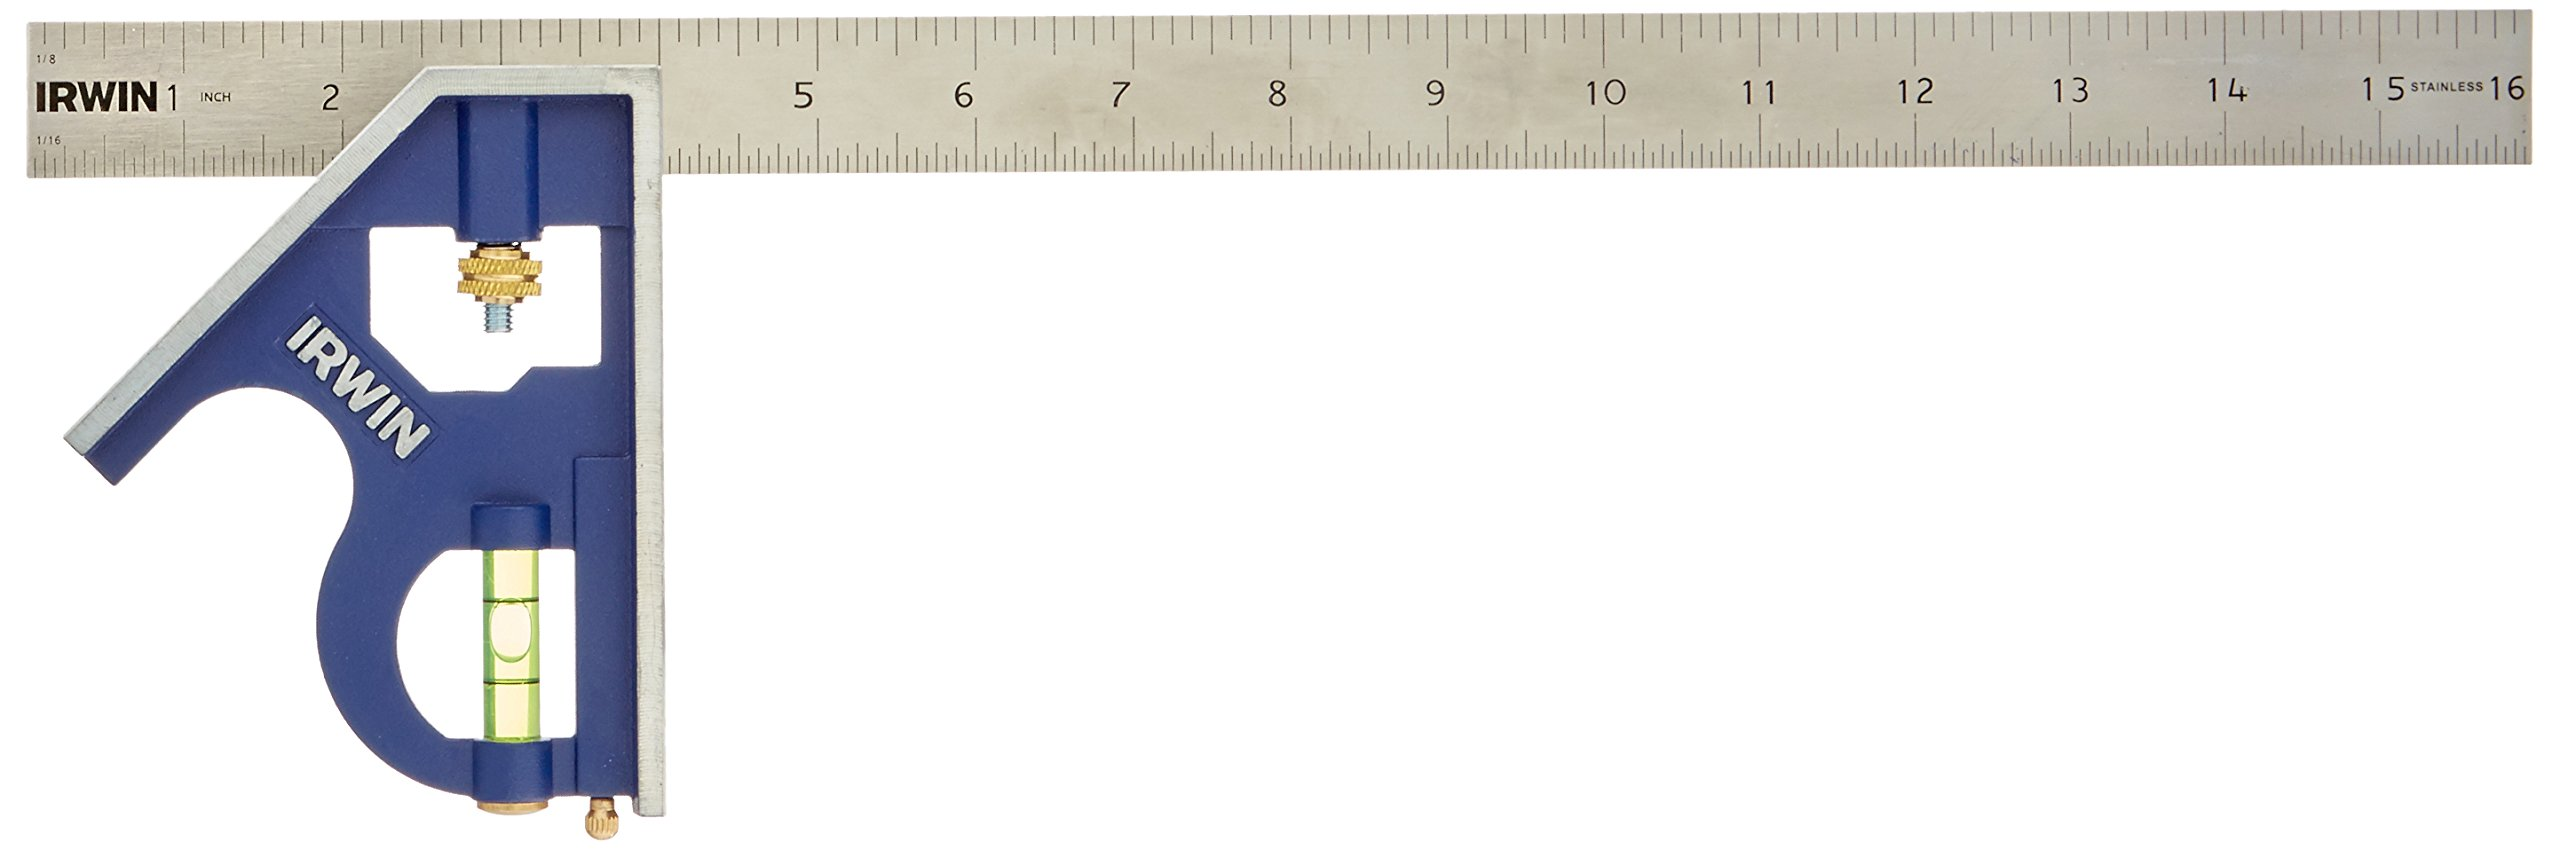 IRWIN Tools Combination Square, Metal-Body, 16-Inch (1794471) by Irwin Tools (Image #2)